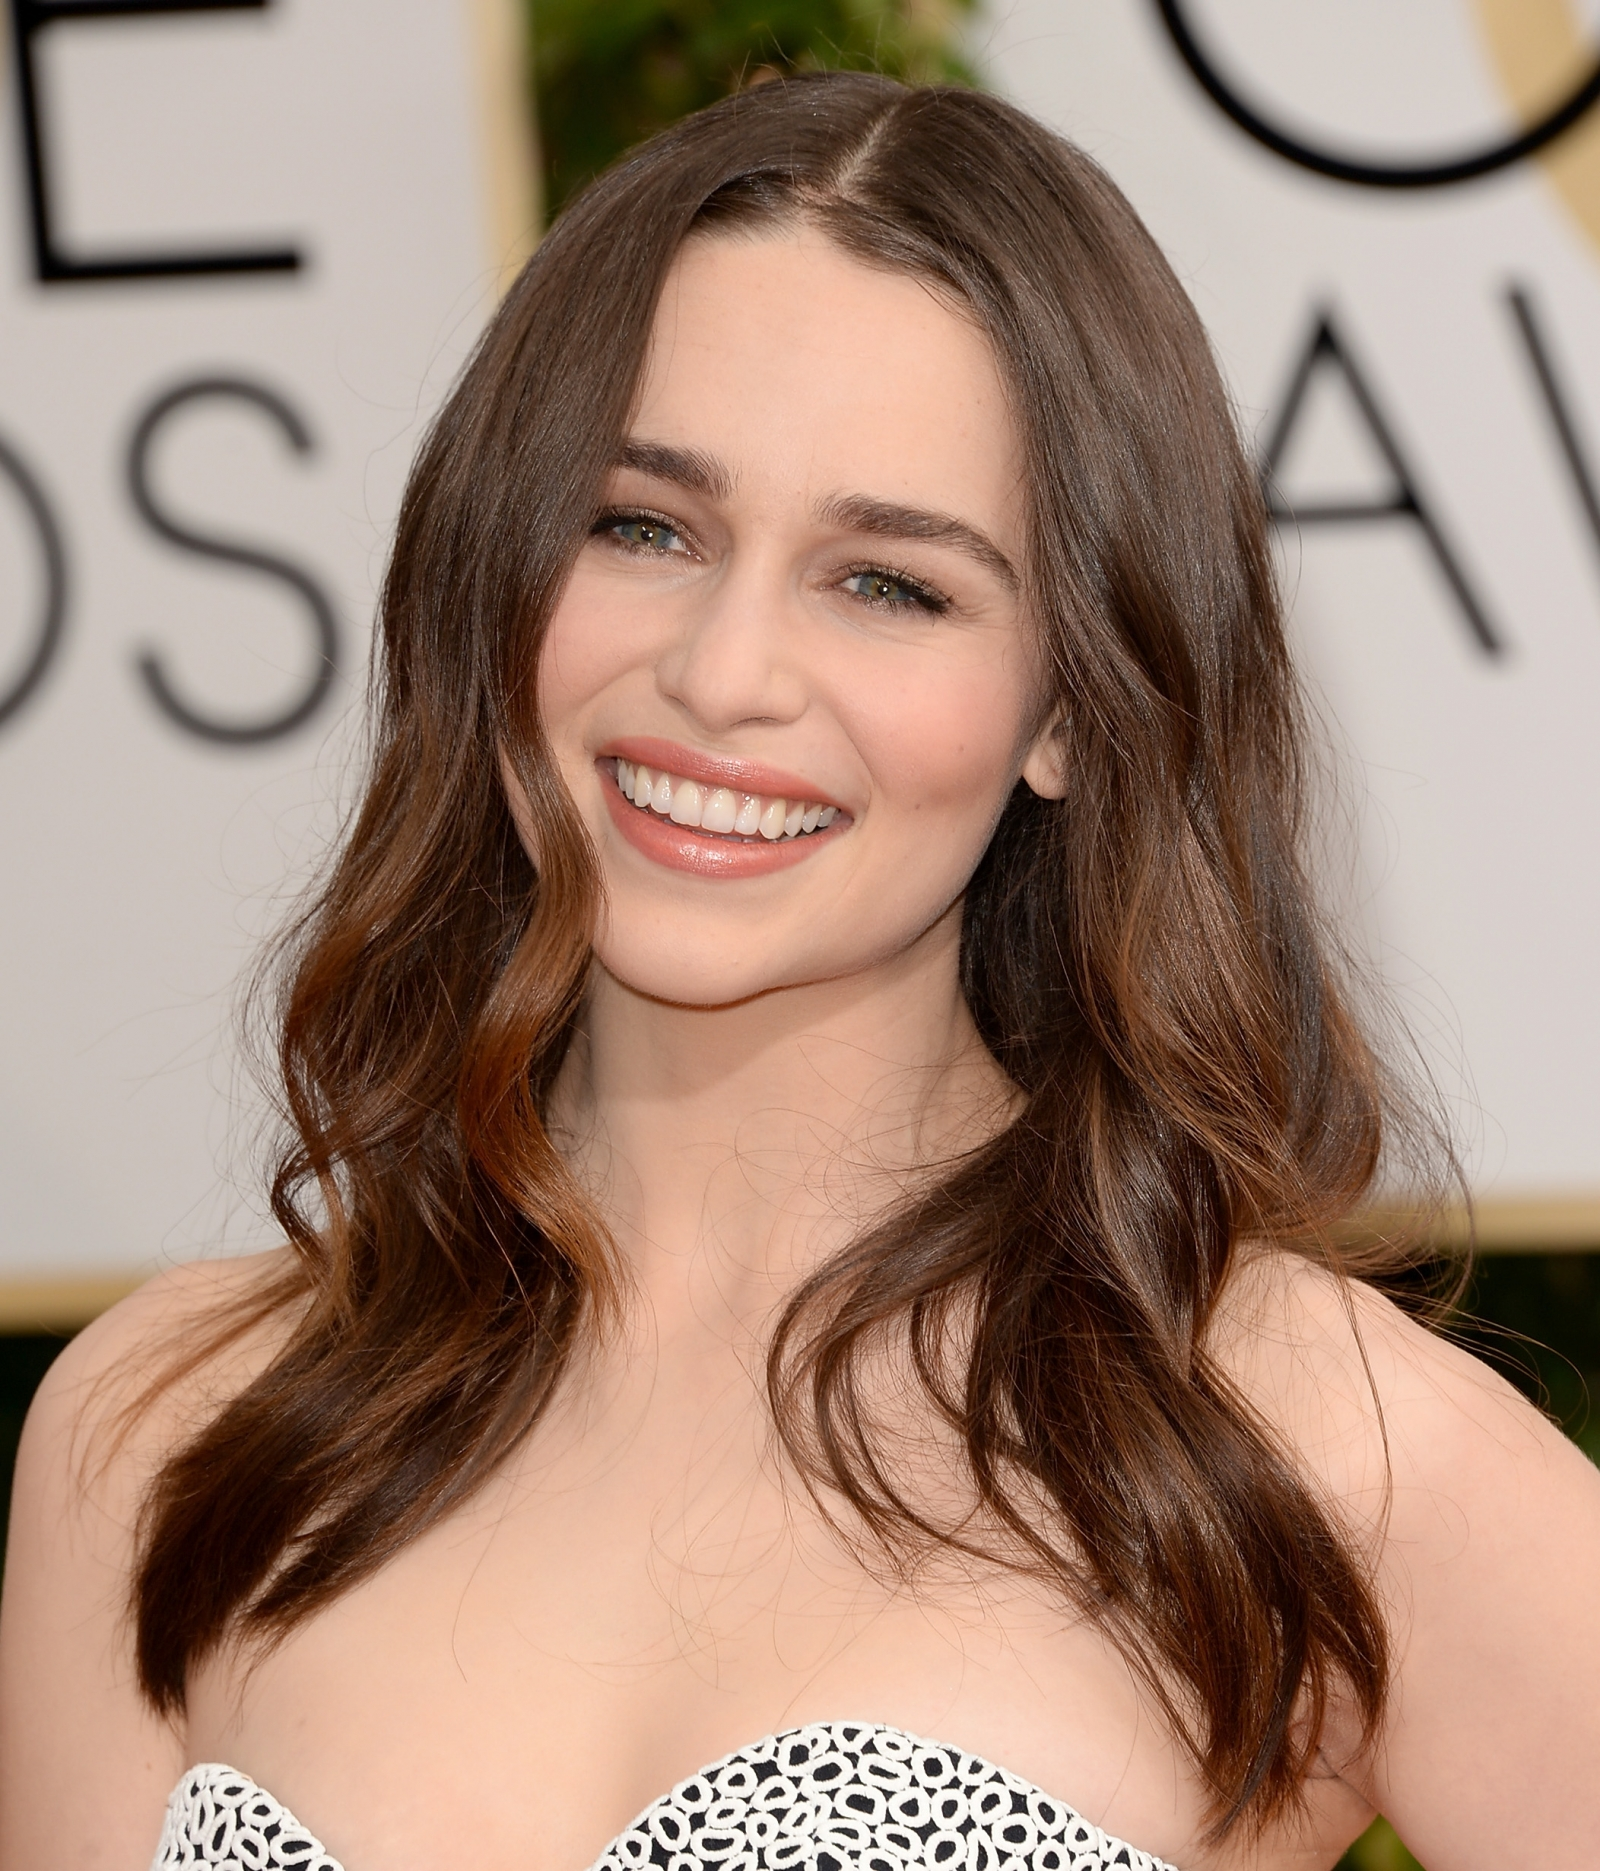 emilia clarke википедияemilia clarke instagram, emilia clarke gif, emilia clarke 2016, emilia clarke wiki, emilia clarke and kit harington, emilia clarke – rastafarian-targaryen, emilia clarke eyebrows, emilia clarke laugh, emilia clarke and sam claflin, emilia clarke png, emilia clarke фото, emilia clarke photo session, emilia clarke and matt leblanc, emilia clarke fan site, emilia clarke exactly, emilia clarke interview, emilia clarke movies, emilia clarke рост, emilia clarke википедия, emilia clarke игра престолов